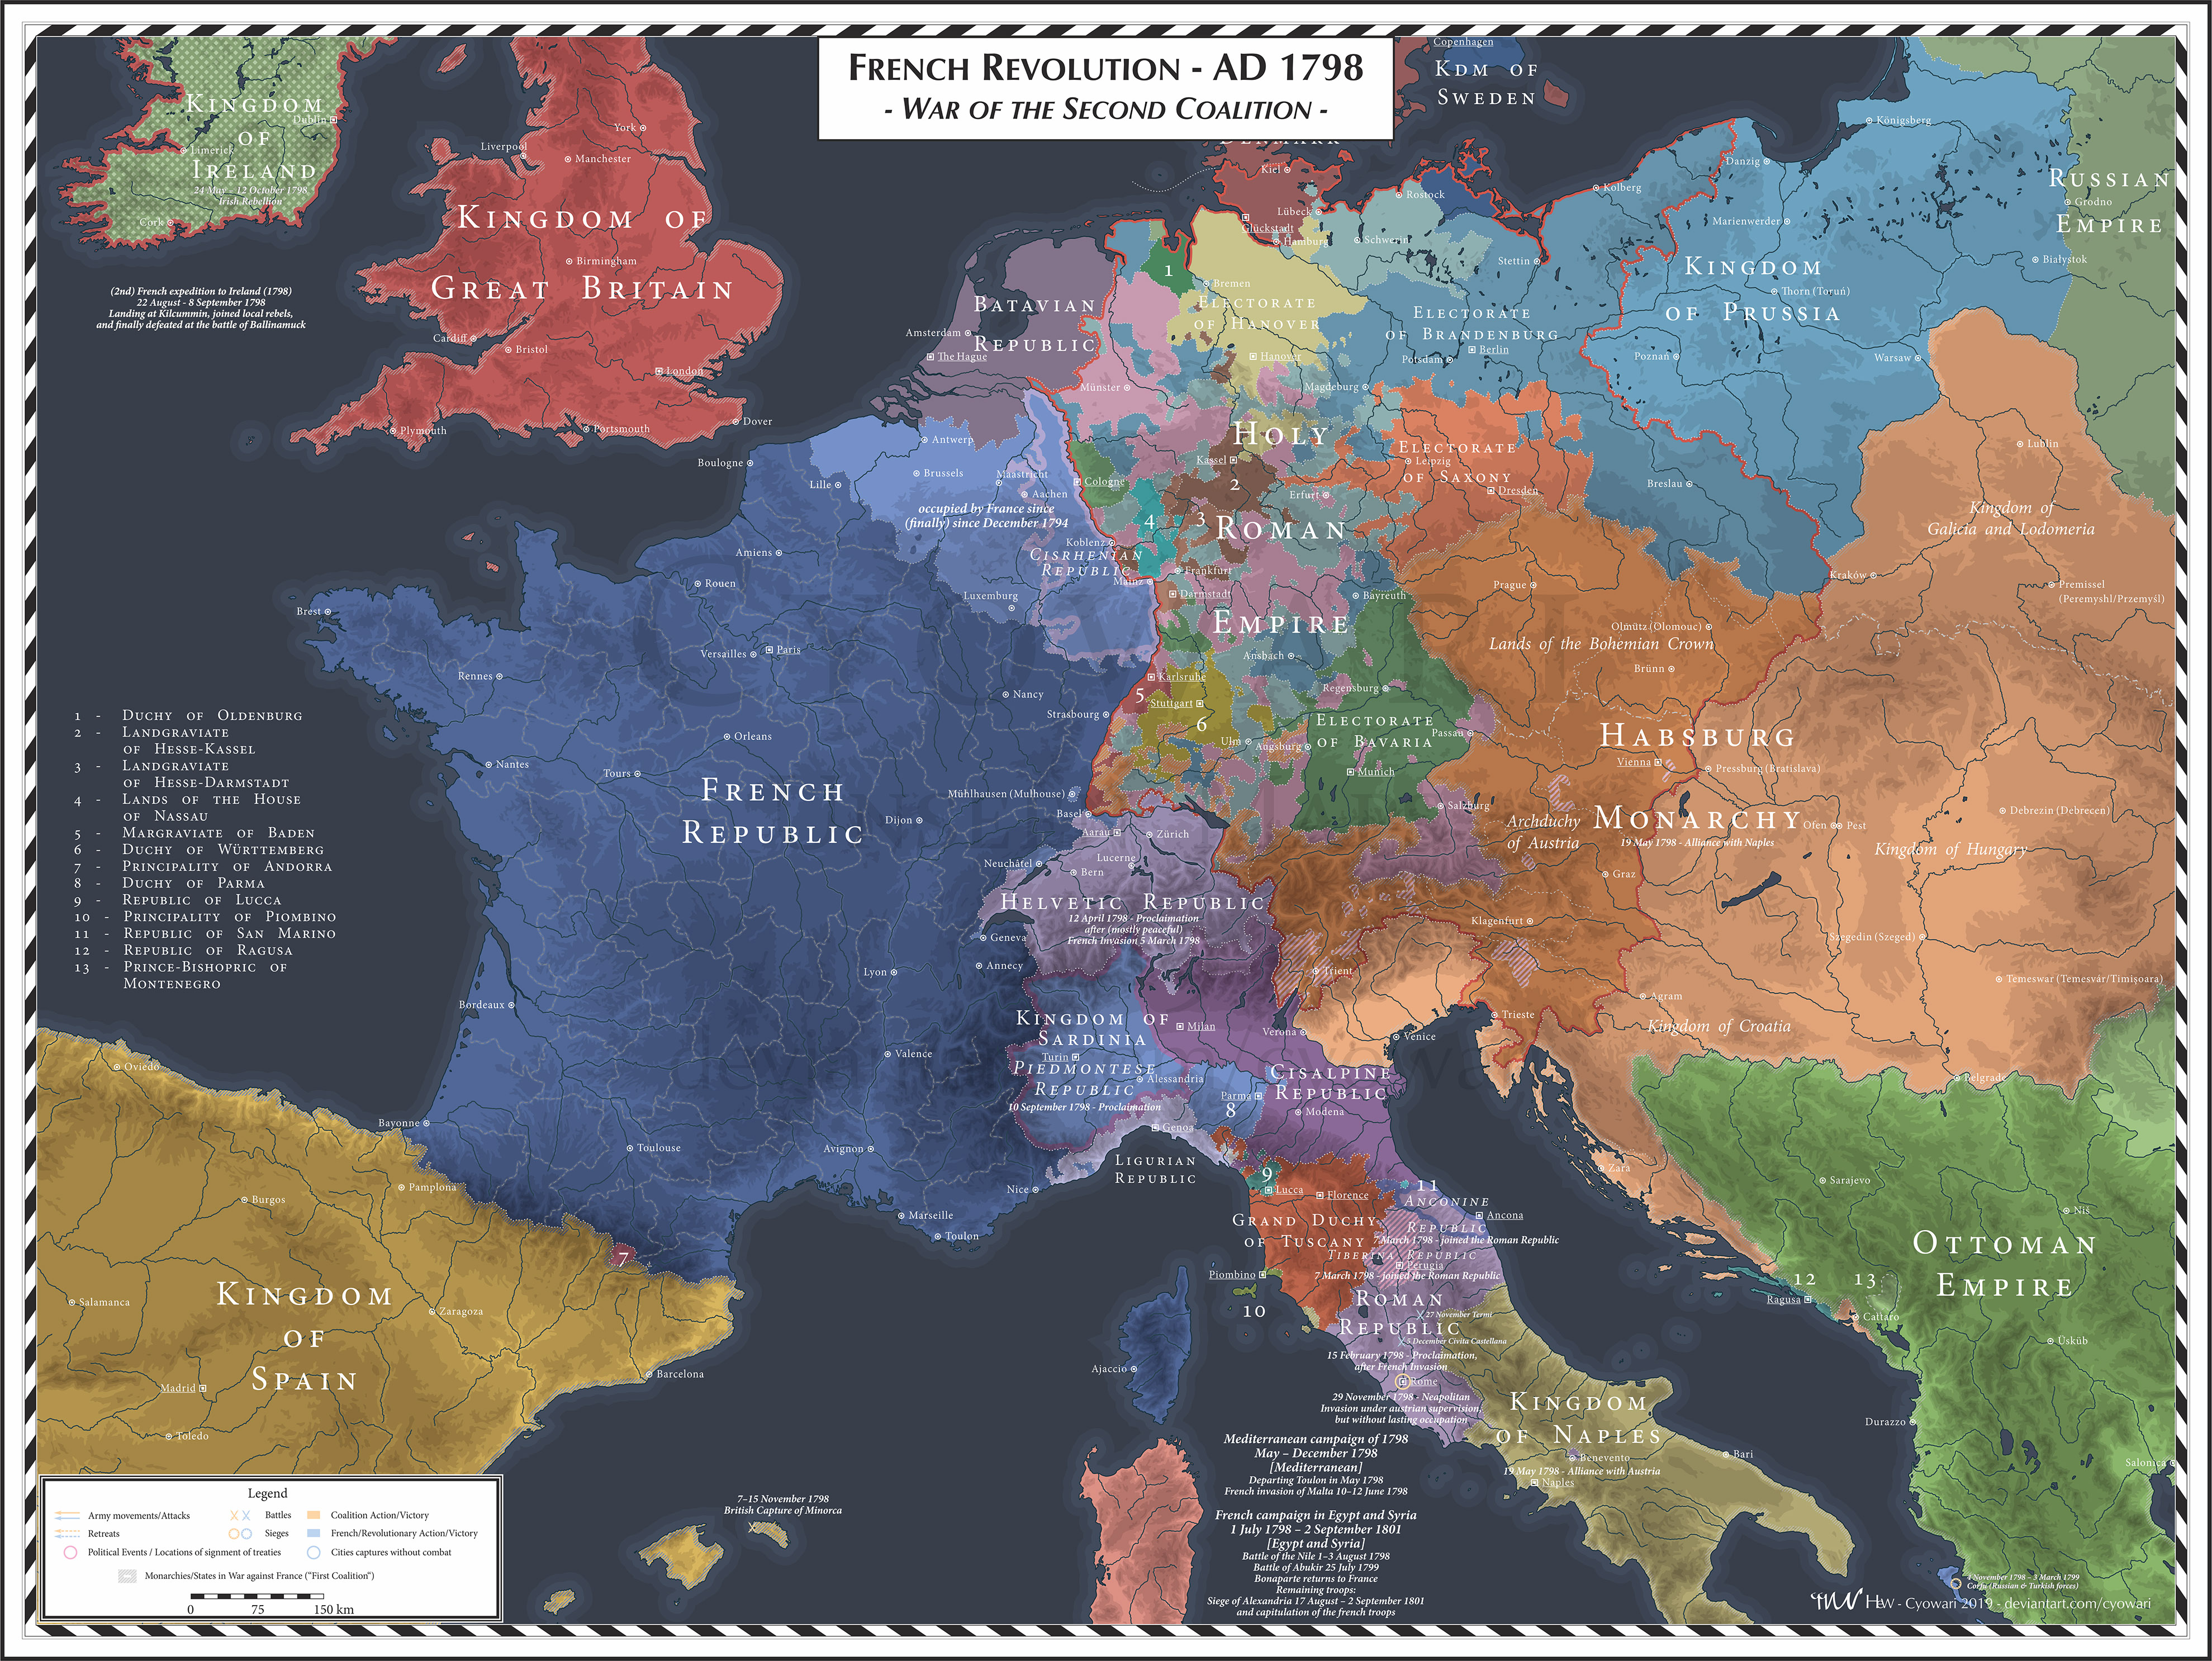 French Revolution - 1798 - Second Coalition